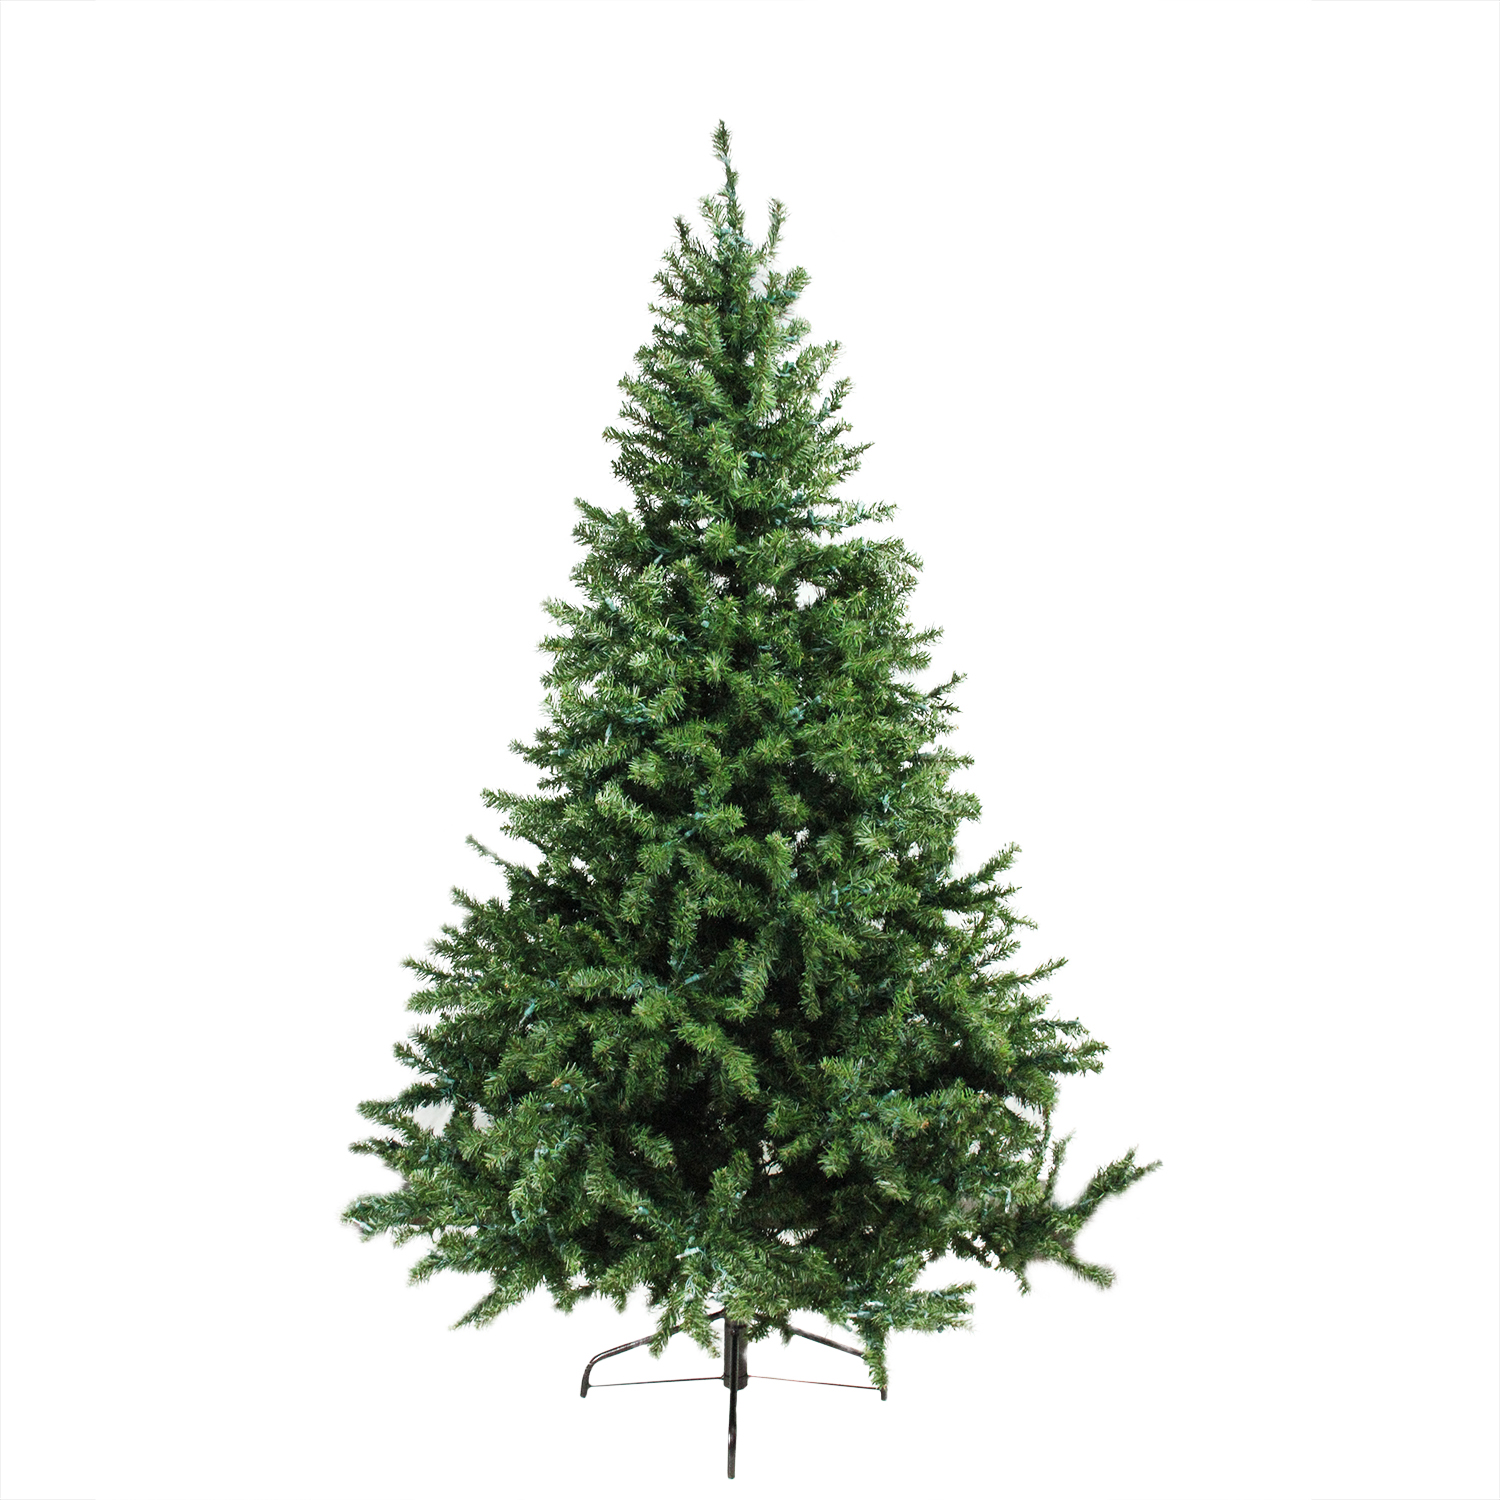 6 Ft. Pre-Lit Canadian Pine Artificial Christmas Tree, Candlelight ...